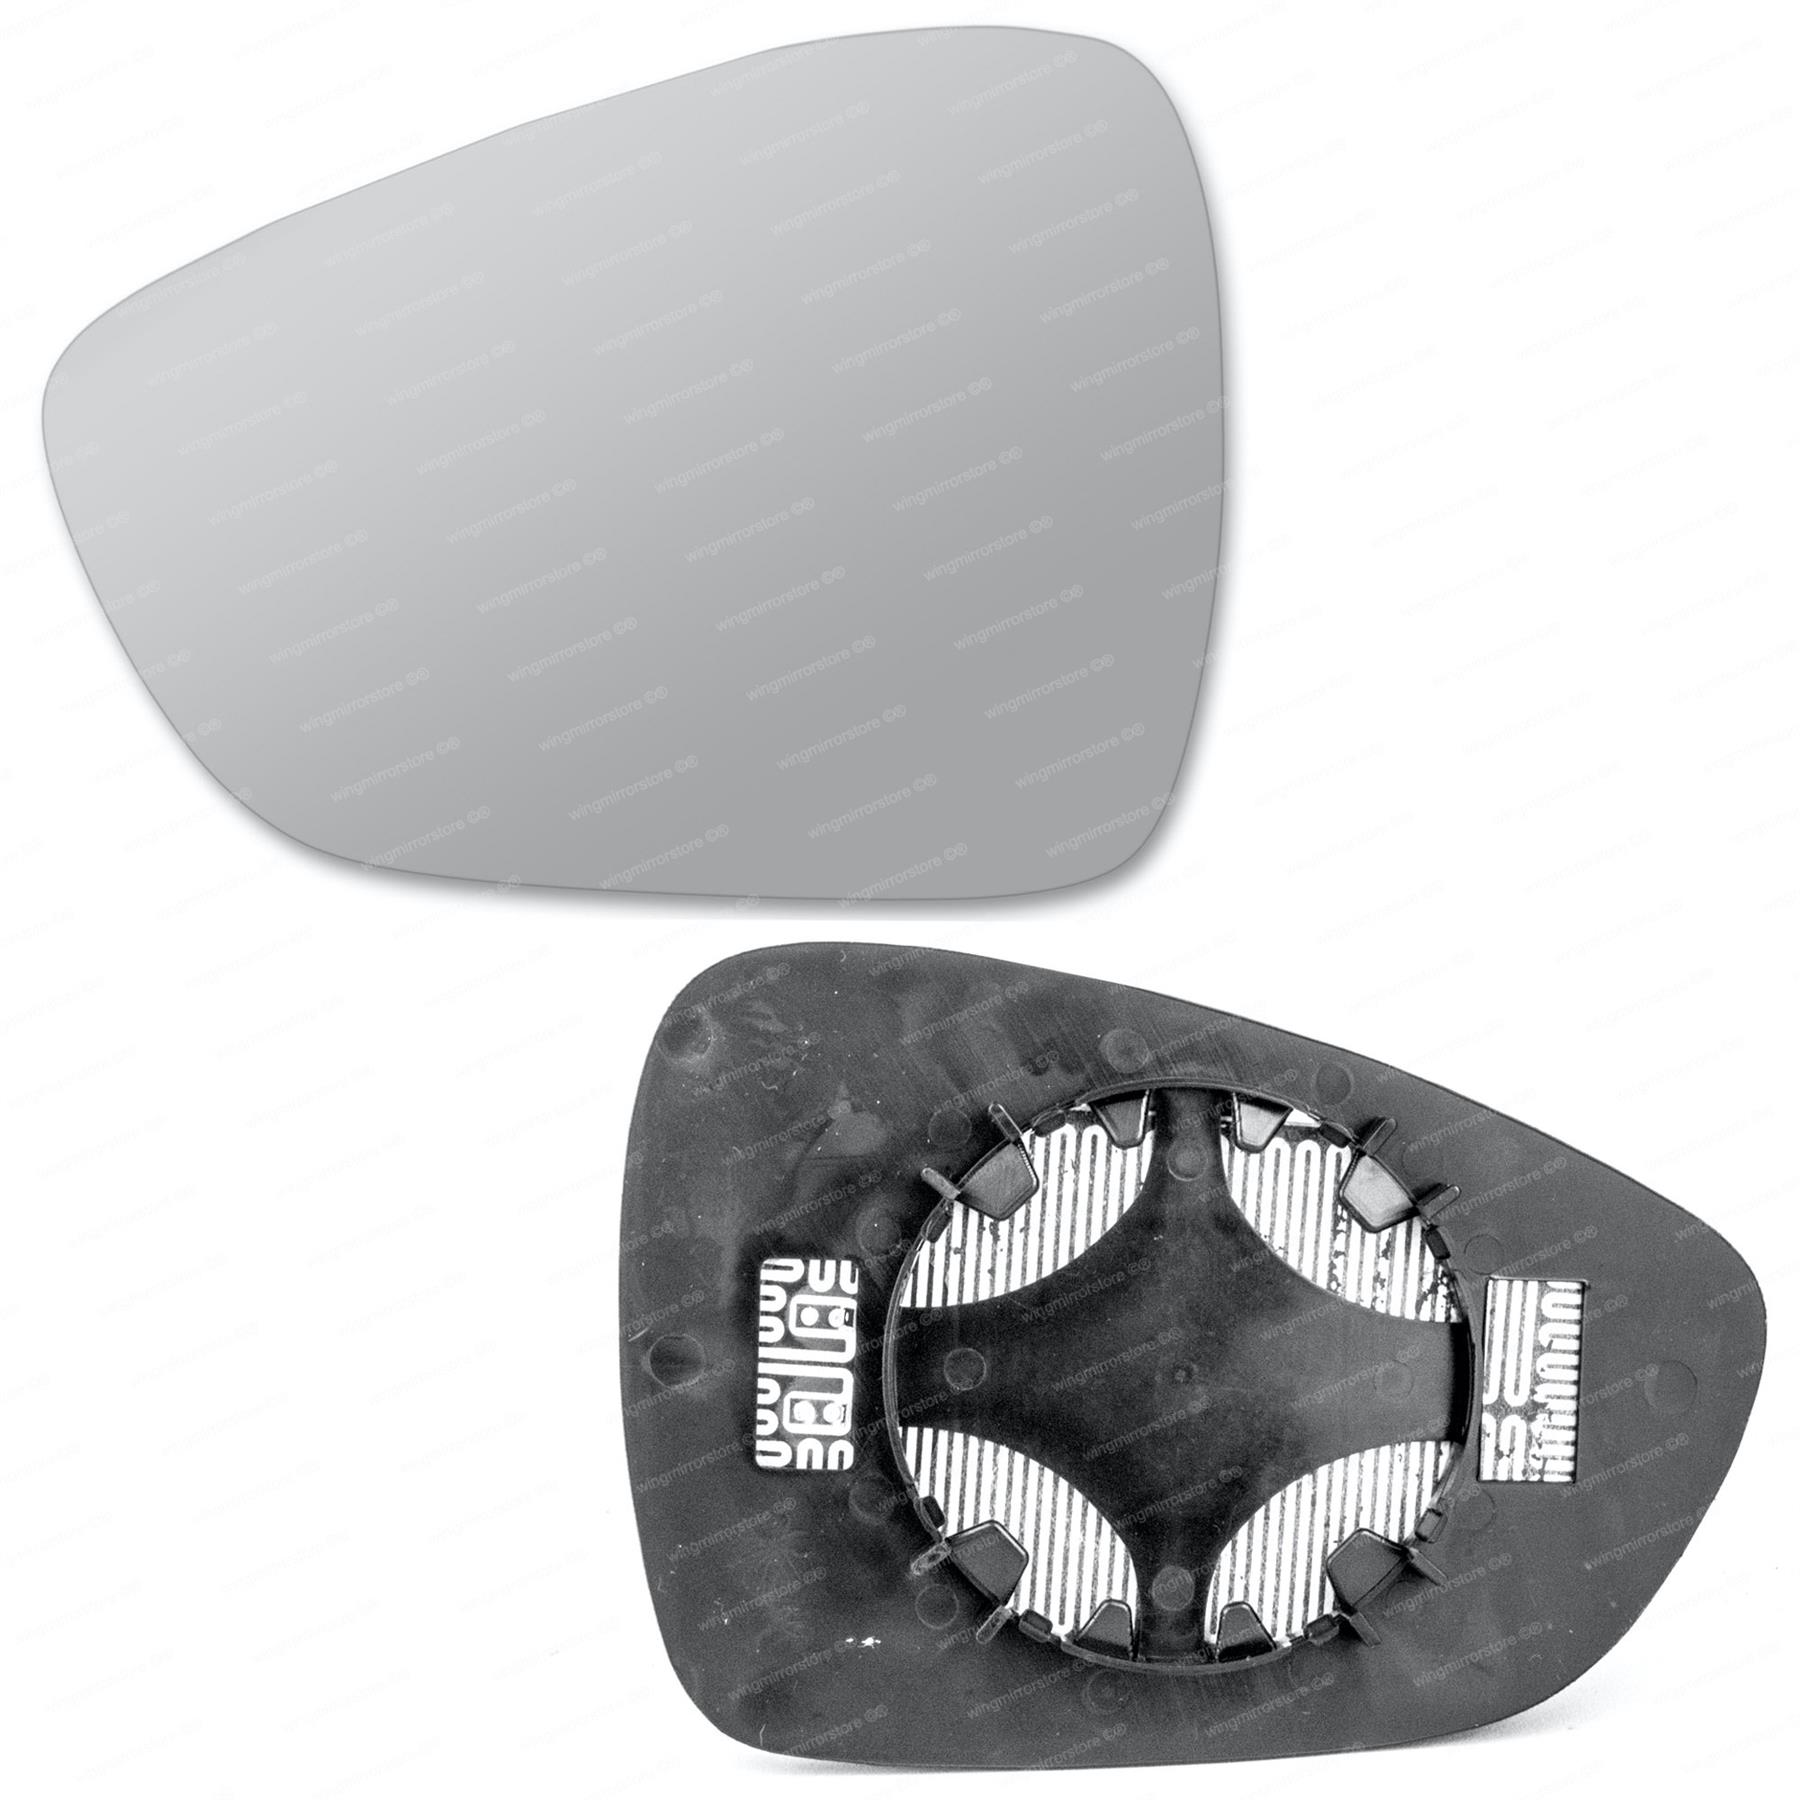 For Citroen C3 2009-2016 Driver right hand side wing door mirror convex glass heated with backing plate